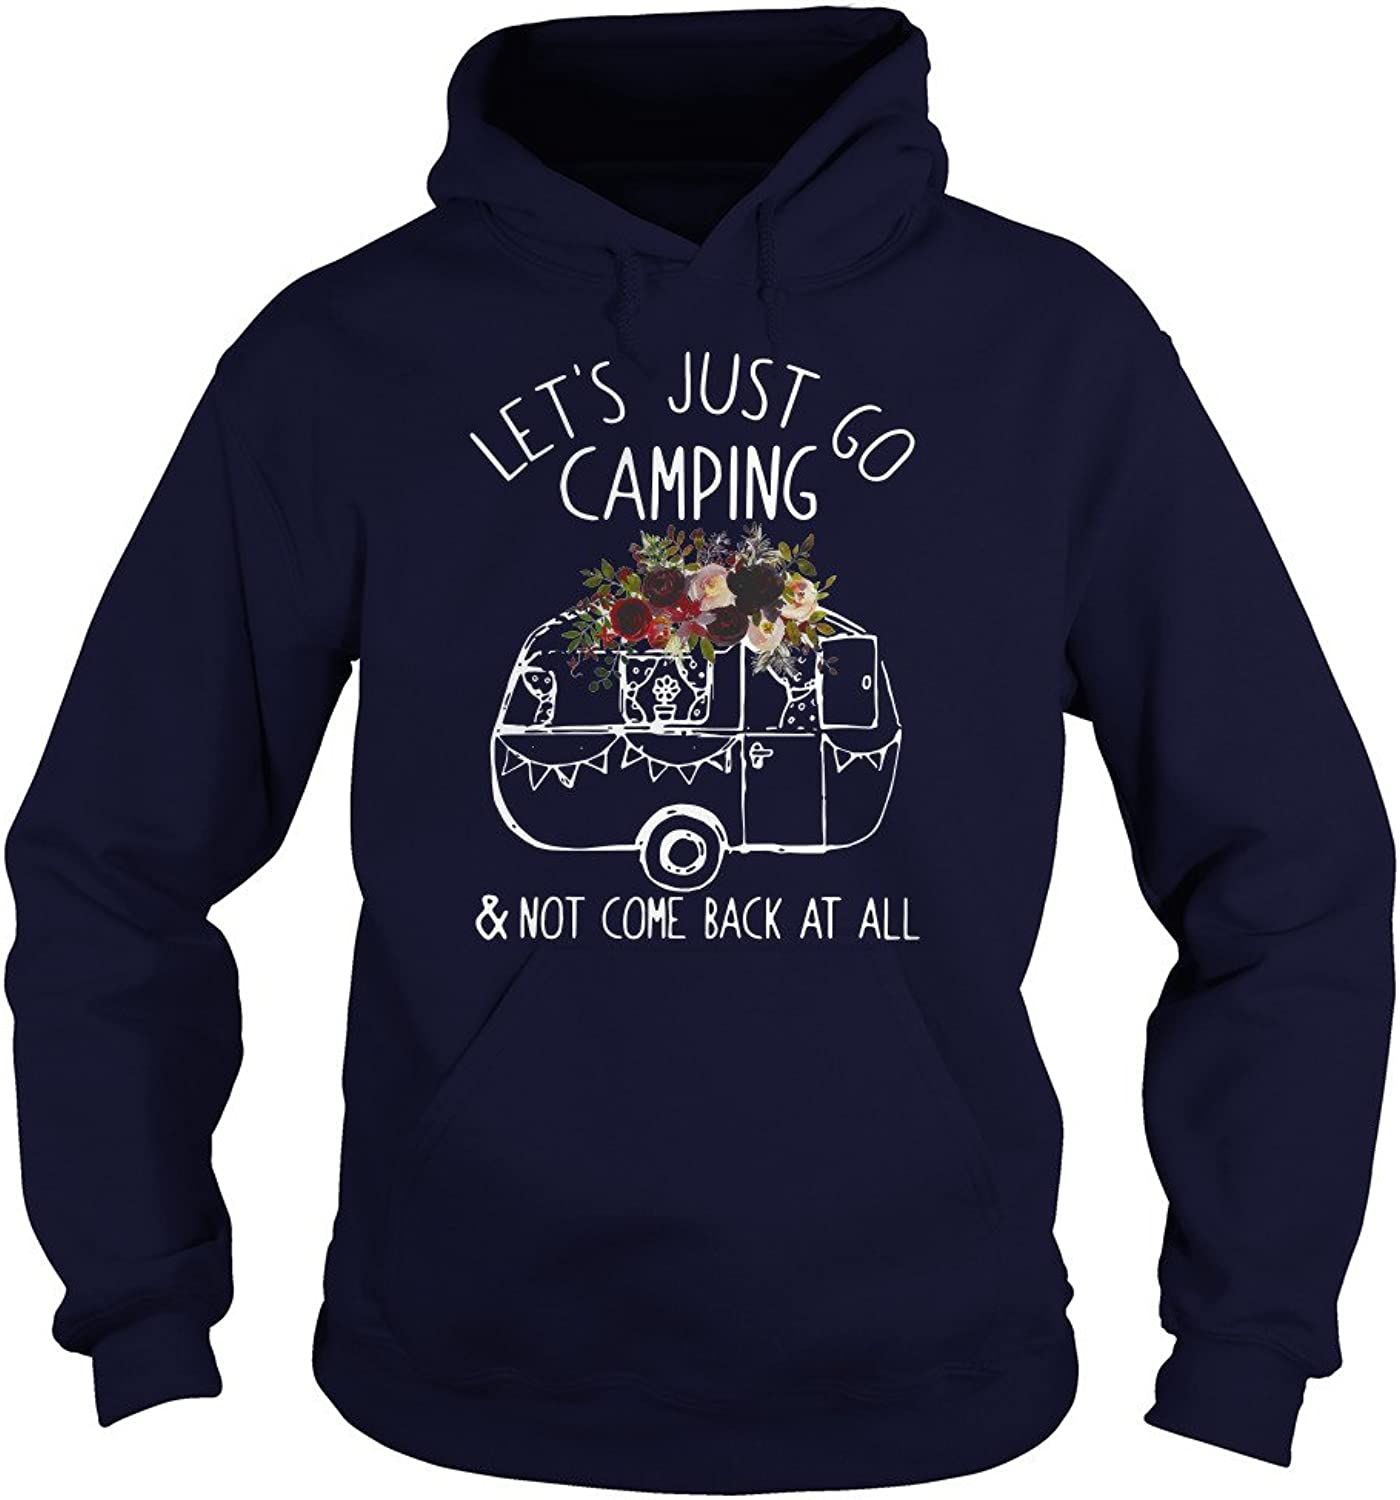 Let's JUST Go Camping & NOT Come Back at All TShirt